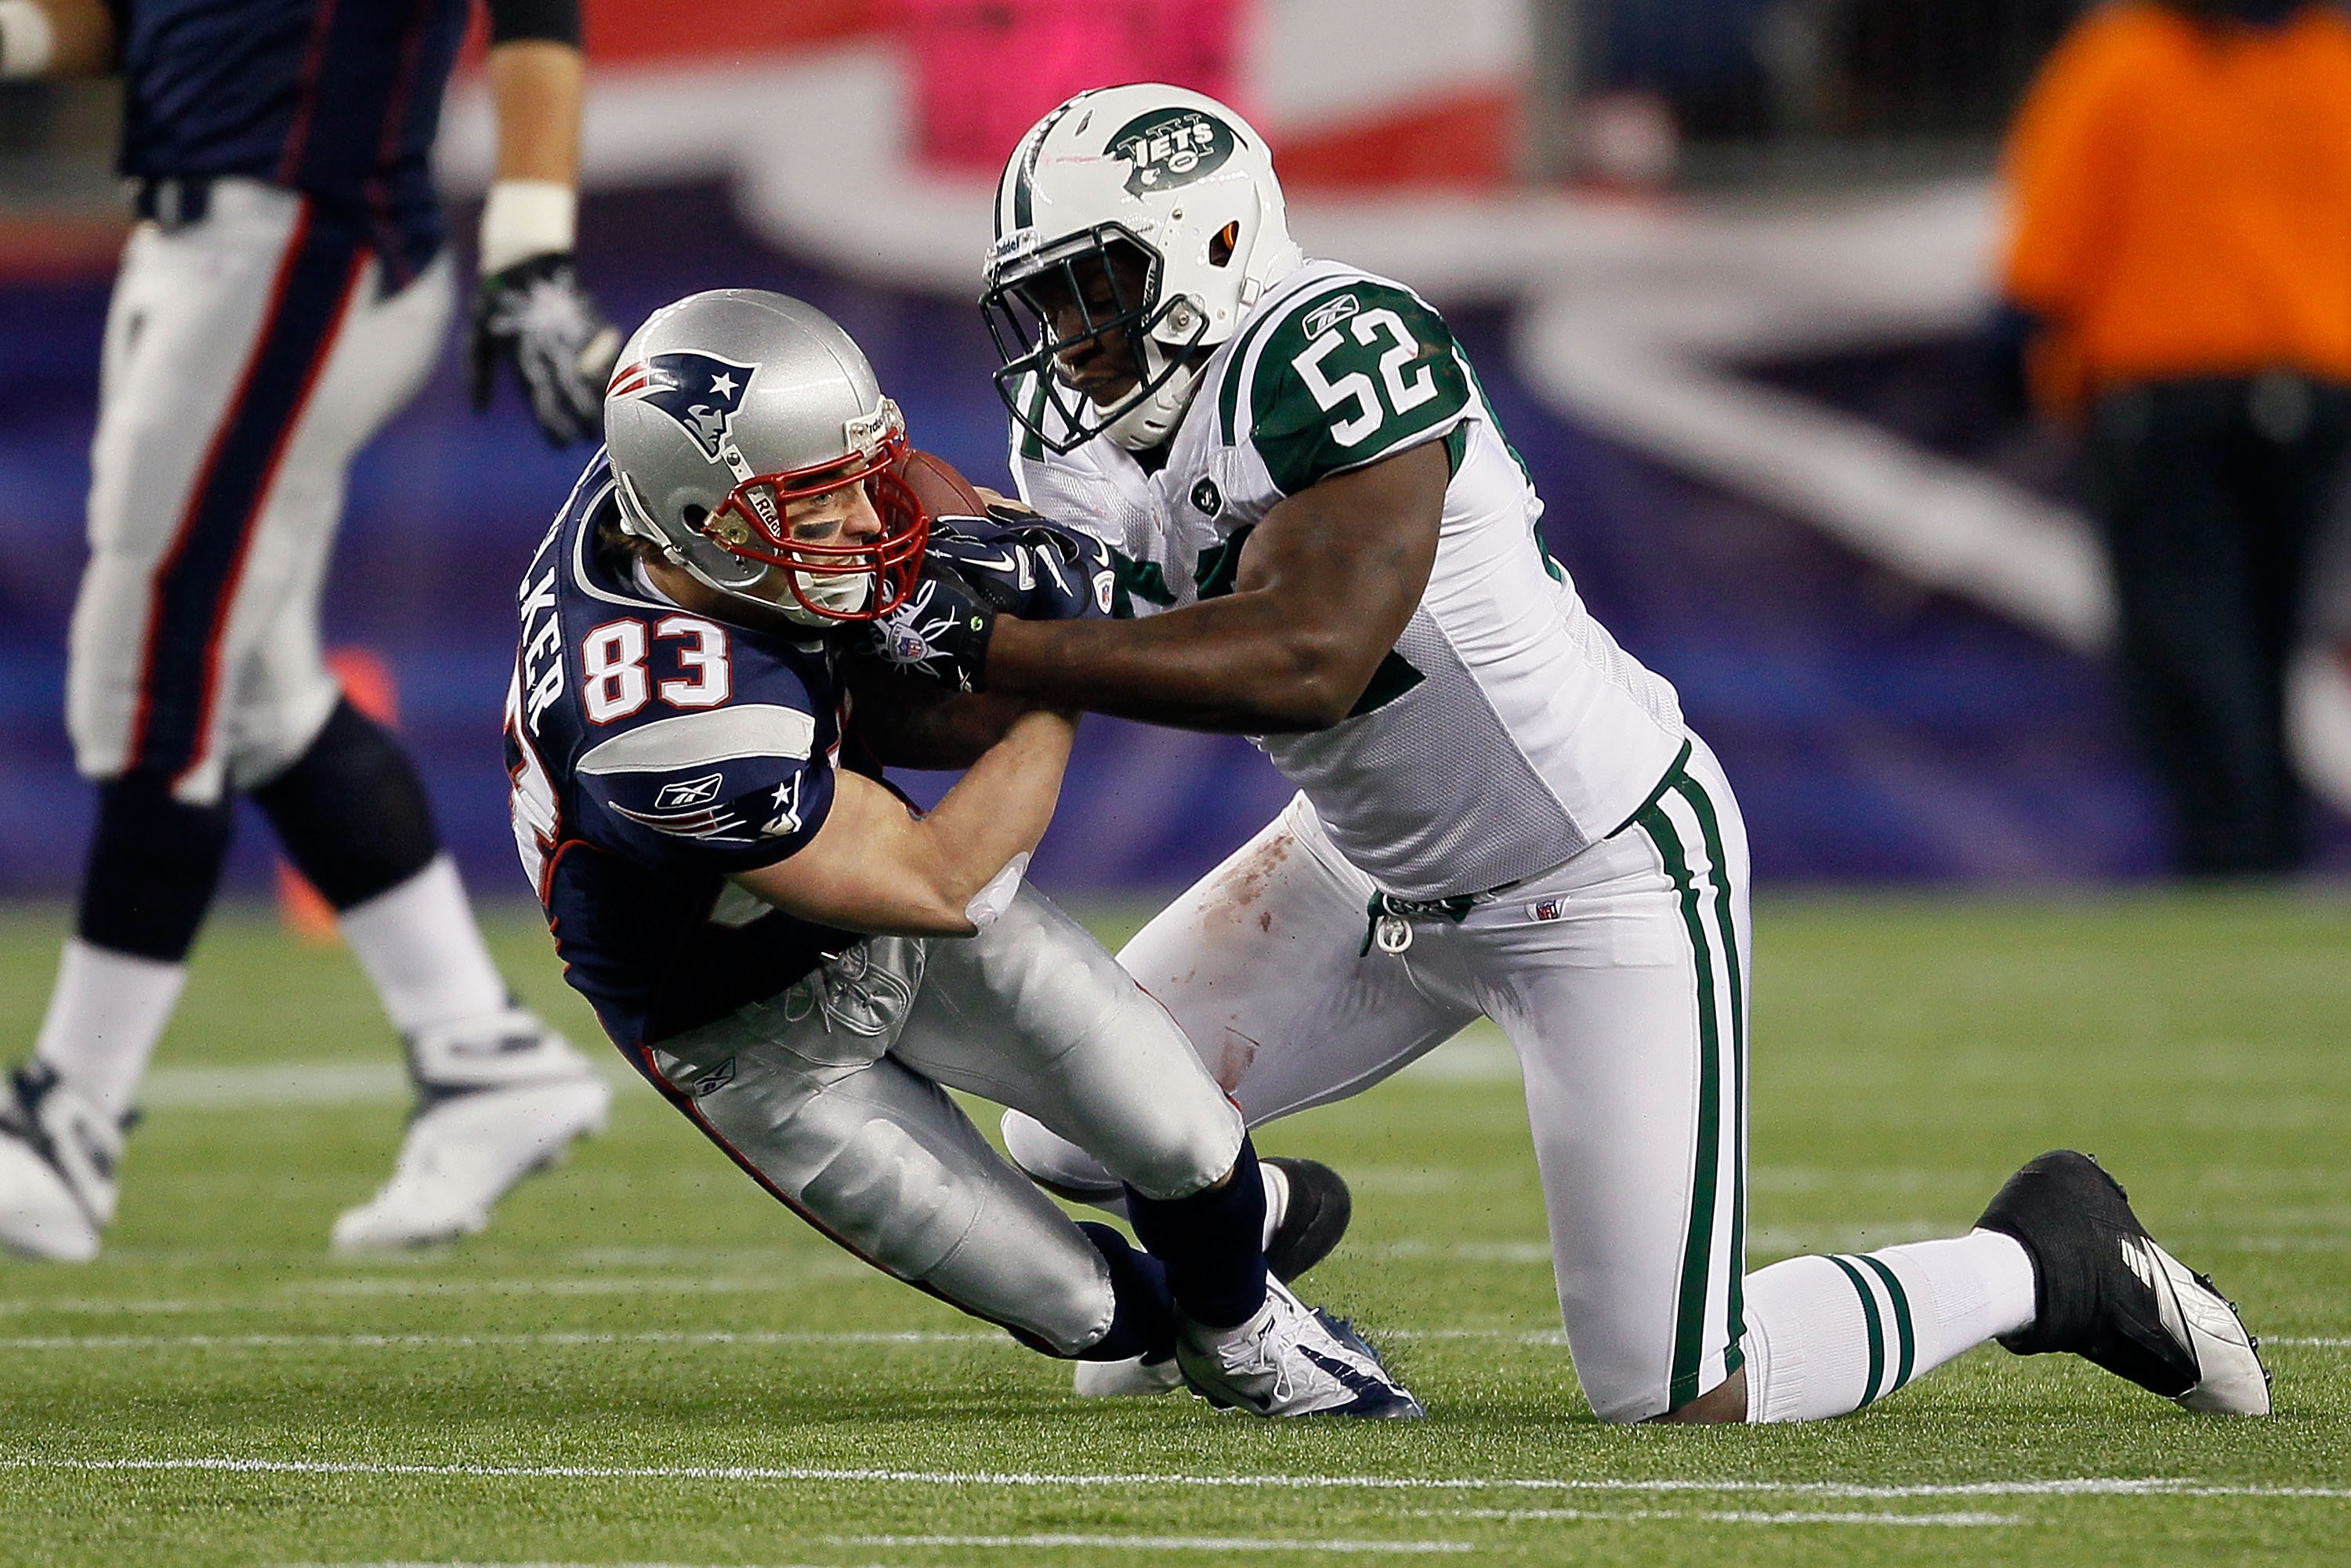 FOXBORO, MA - DECEMBER 06:  Wes Welker #83 of the New England Patriots makes a reception in the first half against David Harris #52 of the New York Jets at Gillette Stadium on December 6, 2010 in Foxboro, Massachusetts.  (Photo by Jim Rogash/Getty Images)